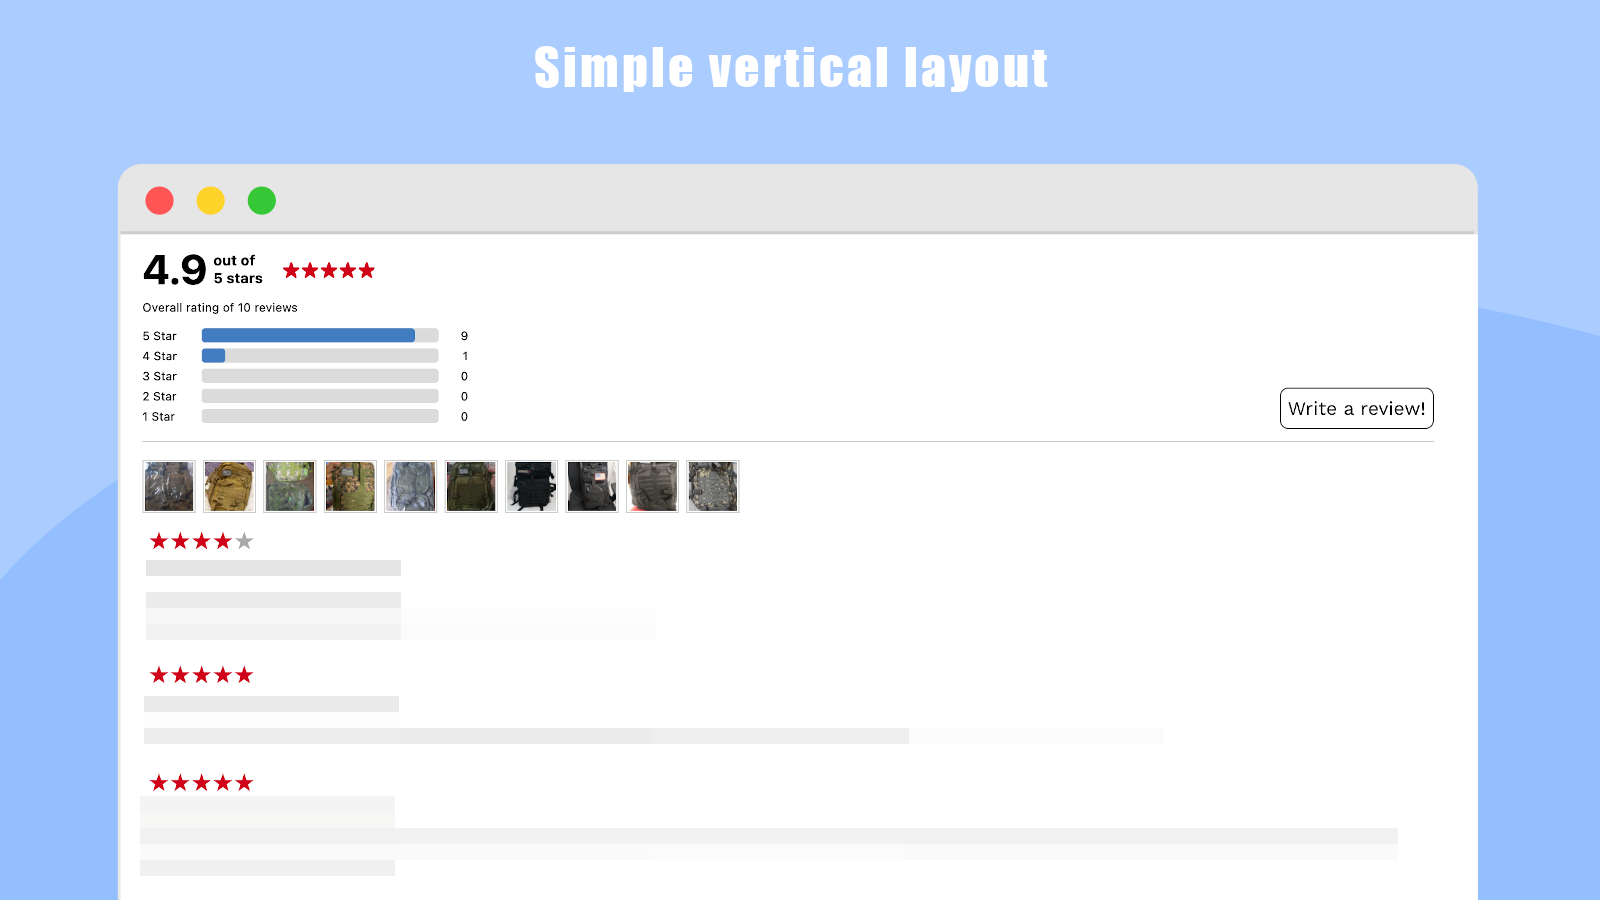 Simple vertical layout